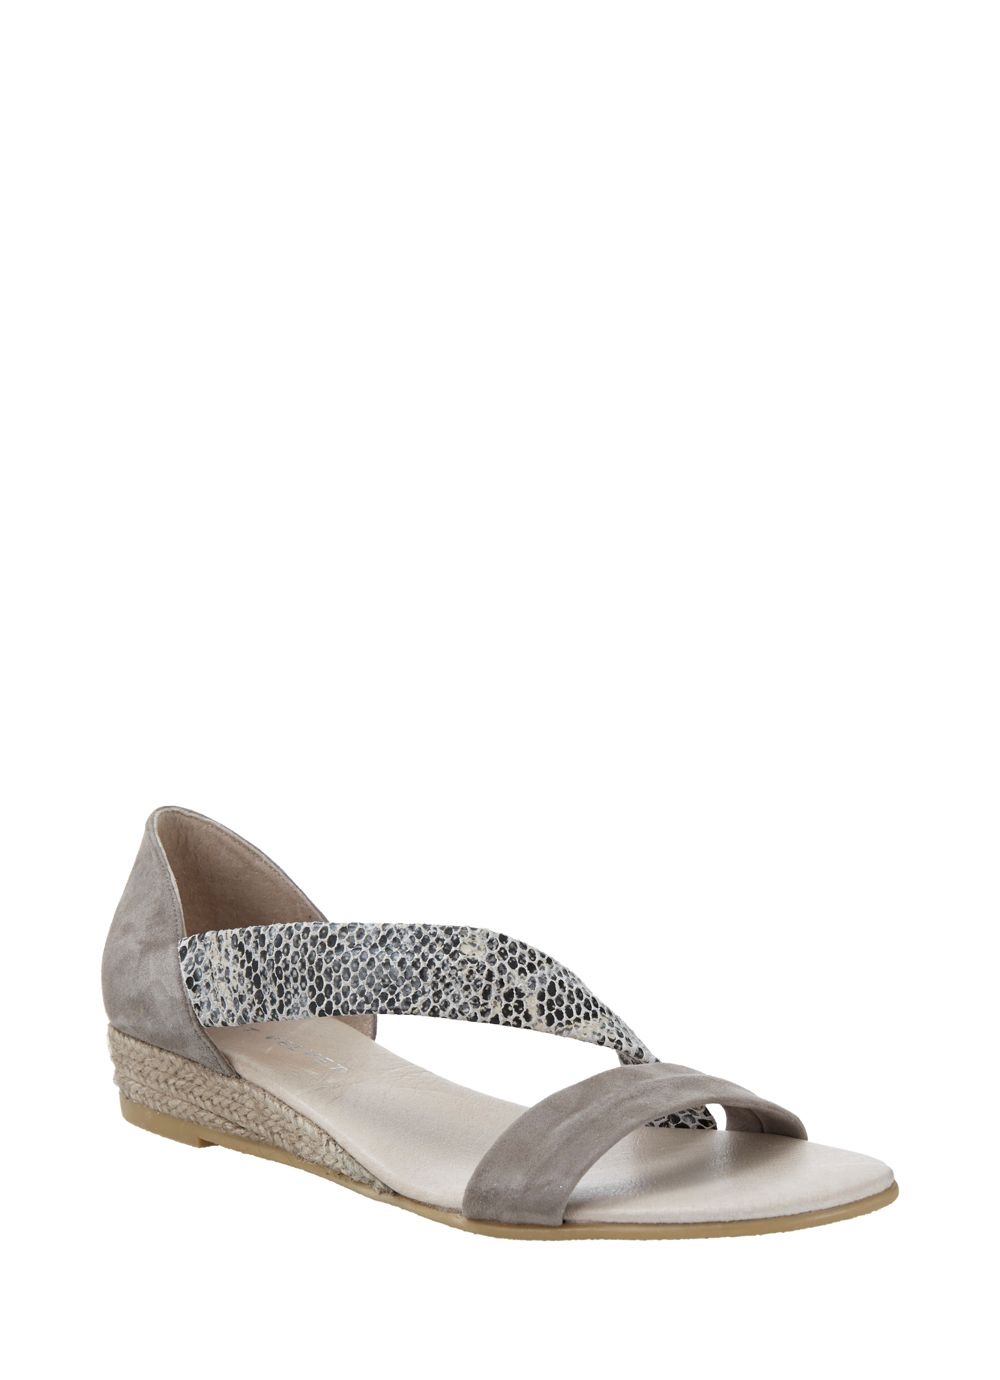 Ella snake wedge